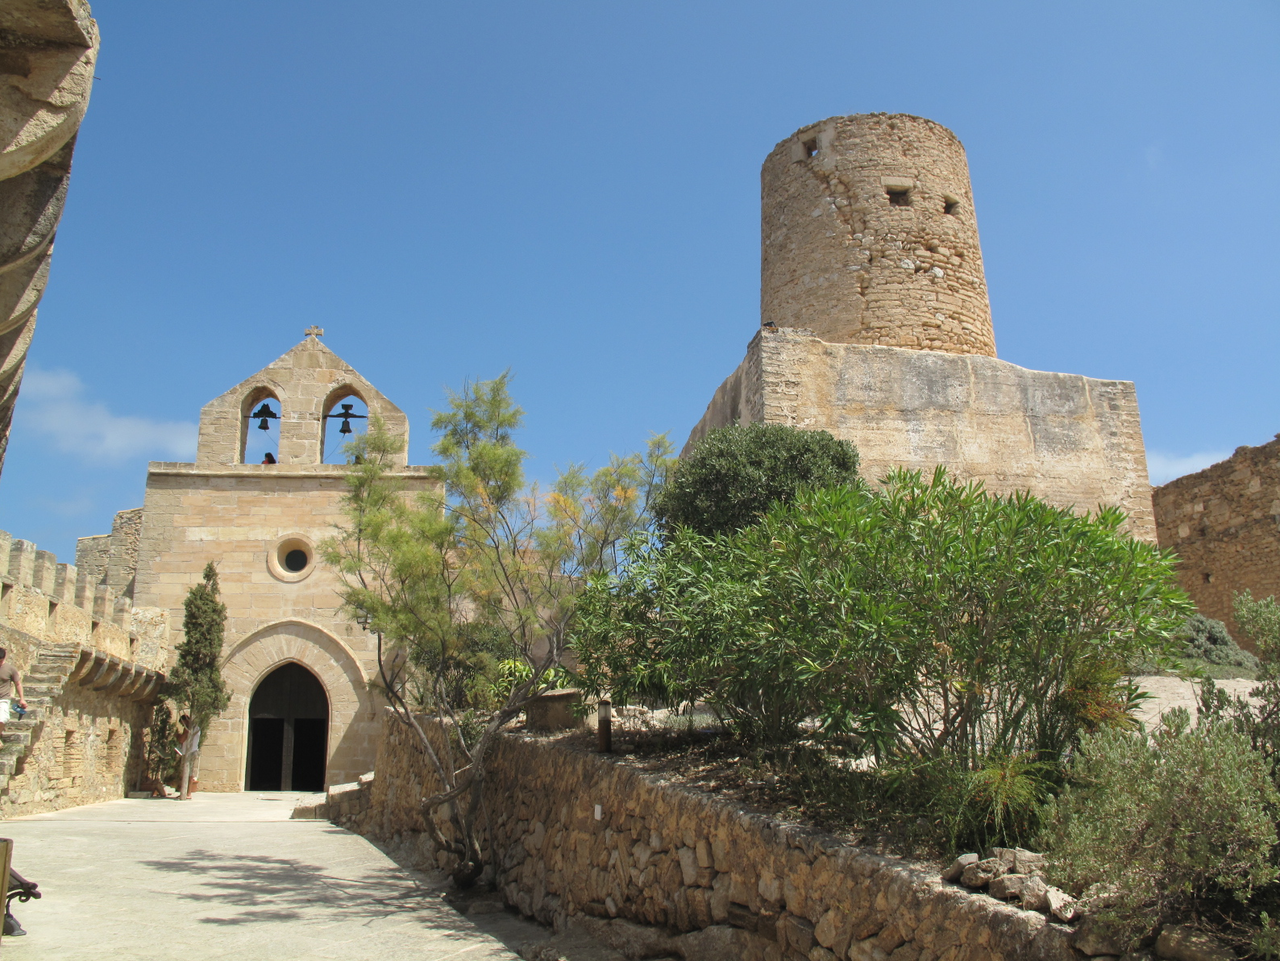 File:Castell de Capdepera 3619.png - Wikimedia Commons